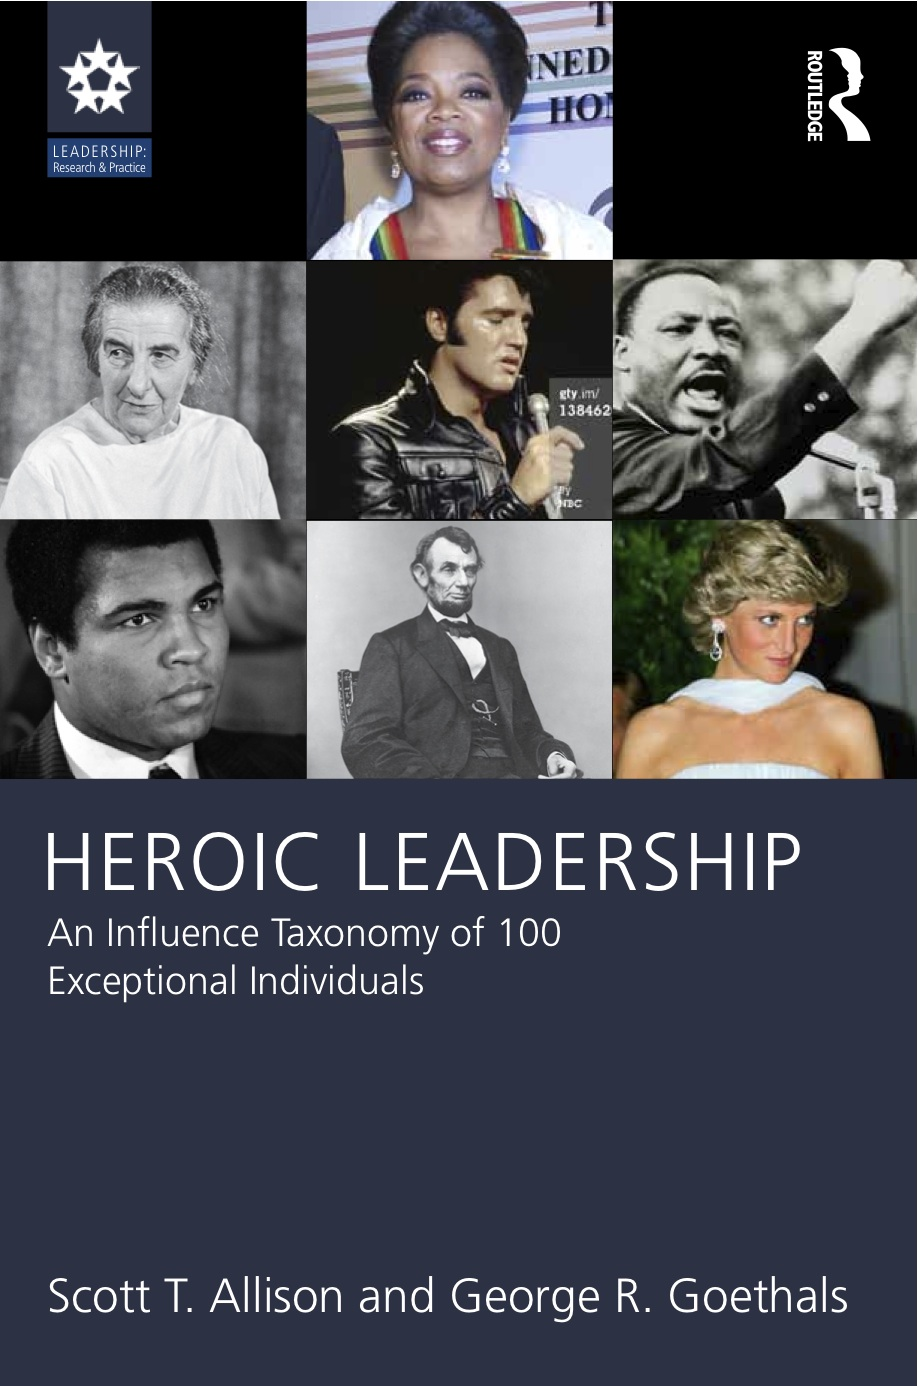 HeroicLeadershipCover